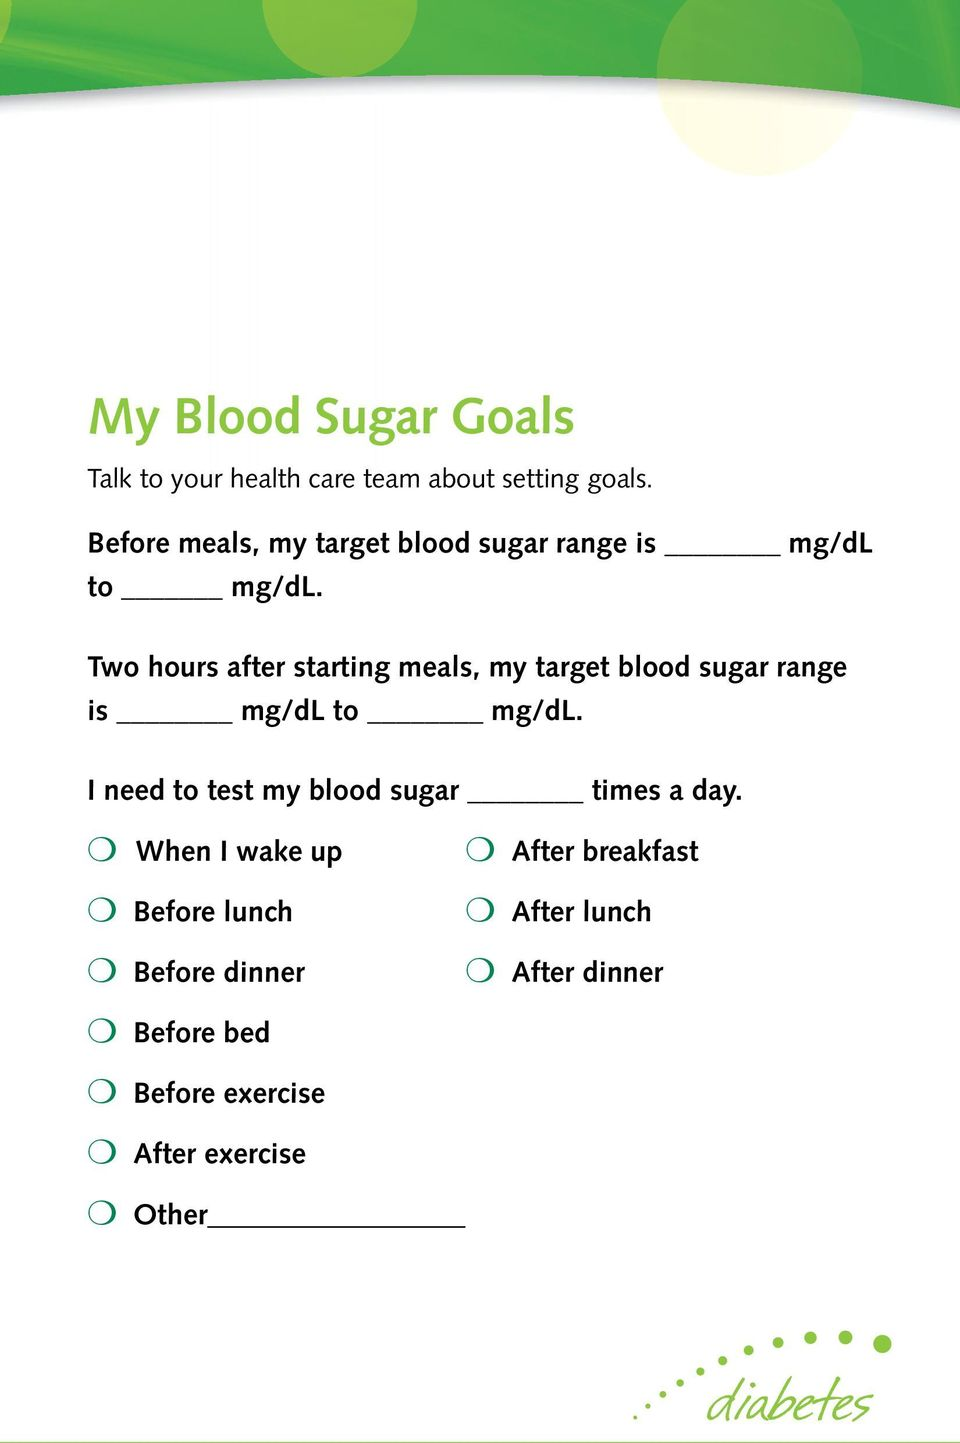 Two hours after starting meals, my target blood sugar range is mg/dl to mg/dl.